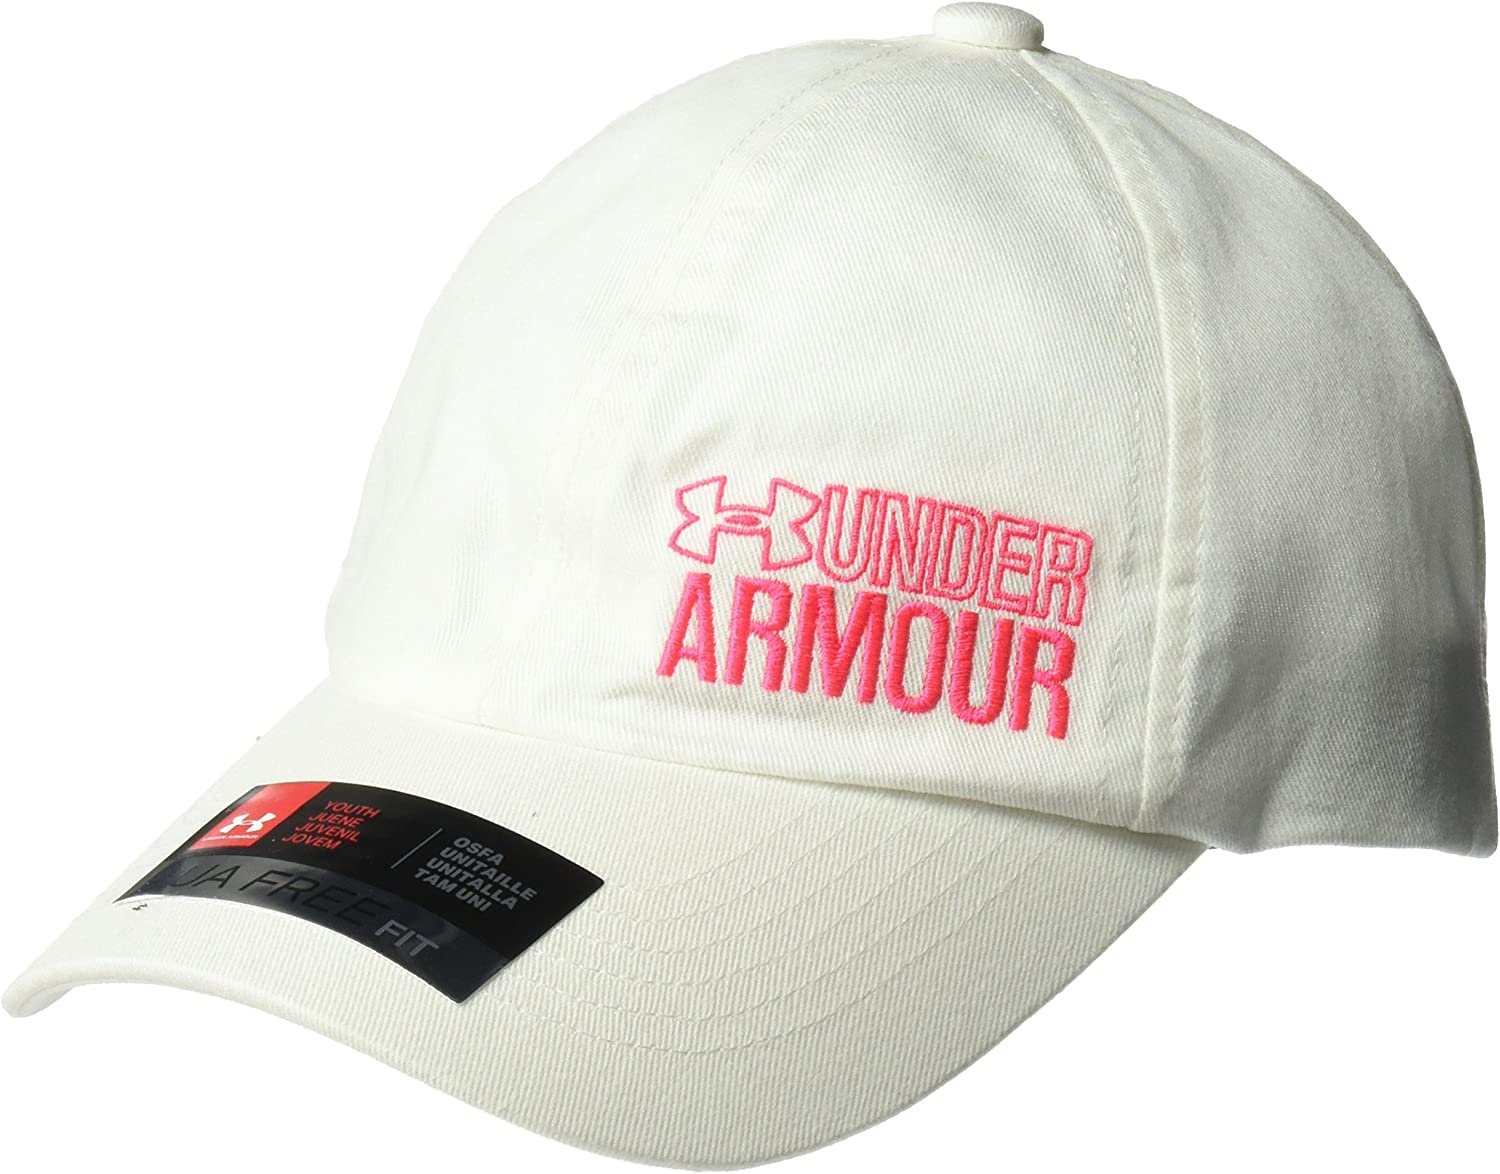 Under Armour Girls Girlong Sleeve Graphic Armour Cap